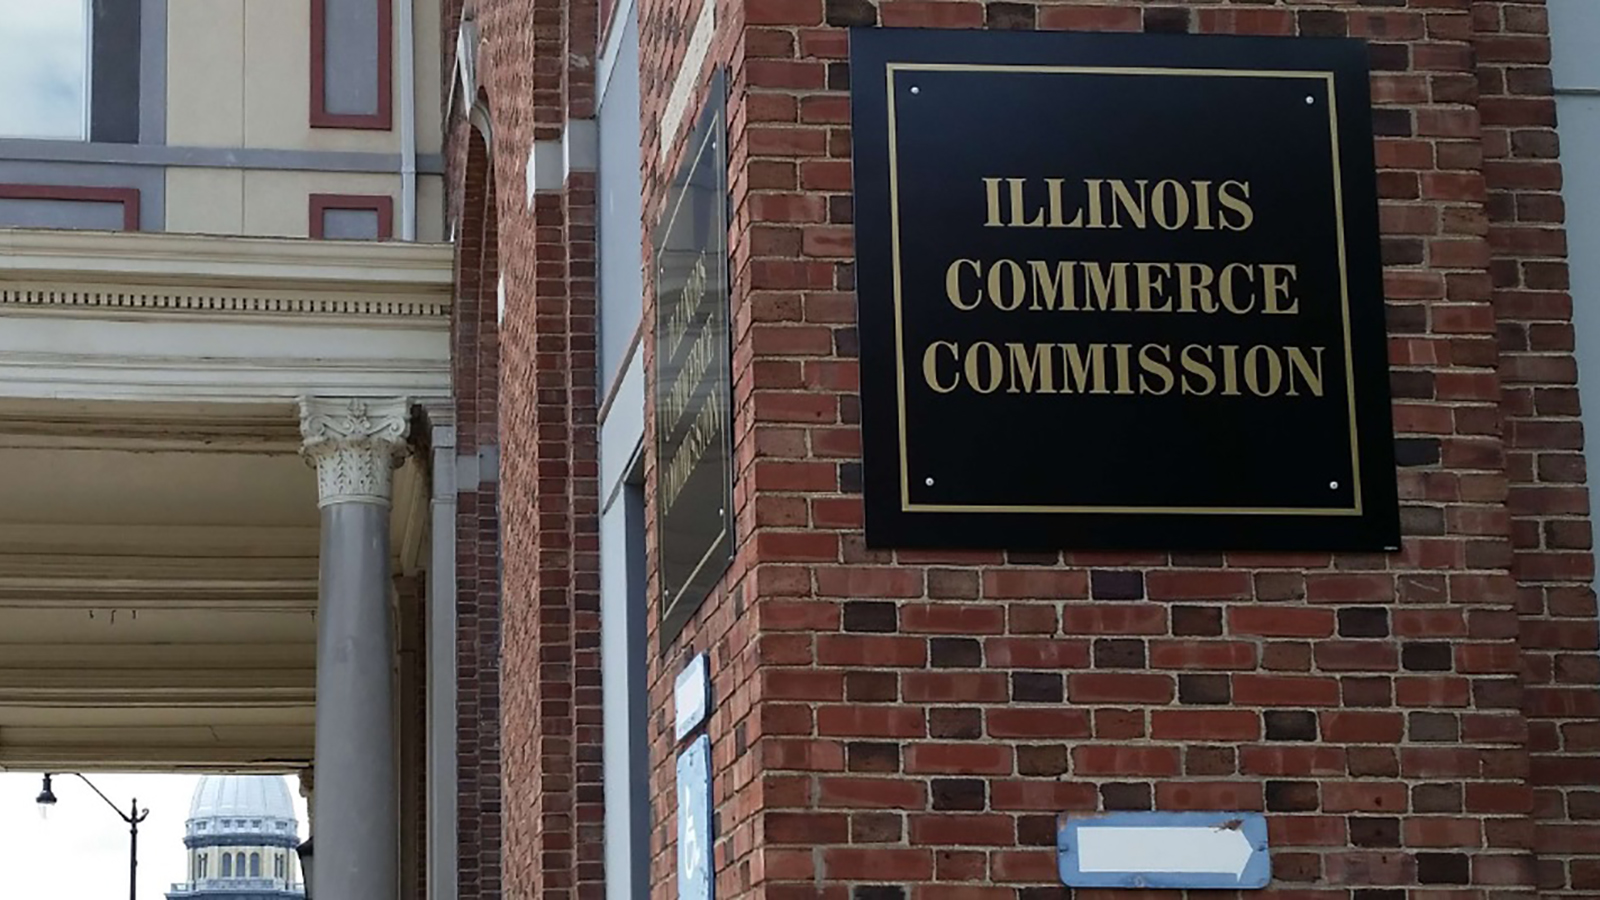 <h4>The Illinois Commerce Commission has failed to hold Peoples Gas accountable</h4><p>Despite announcing an investigation with great fanfare at the end of 2015, the Commission excluded expertise from the investigation, failed to answer the questions it posed, and ultimately declined to take action, citing a questionable legal argument.</p><em>Illinois Commerce Commission</em>